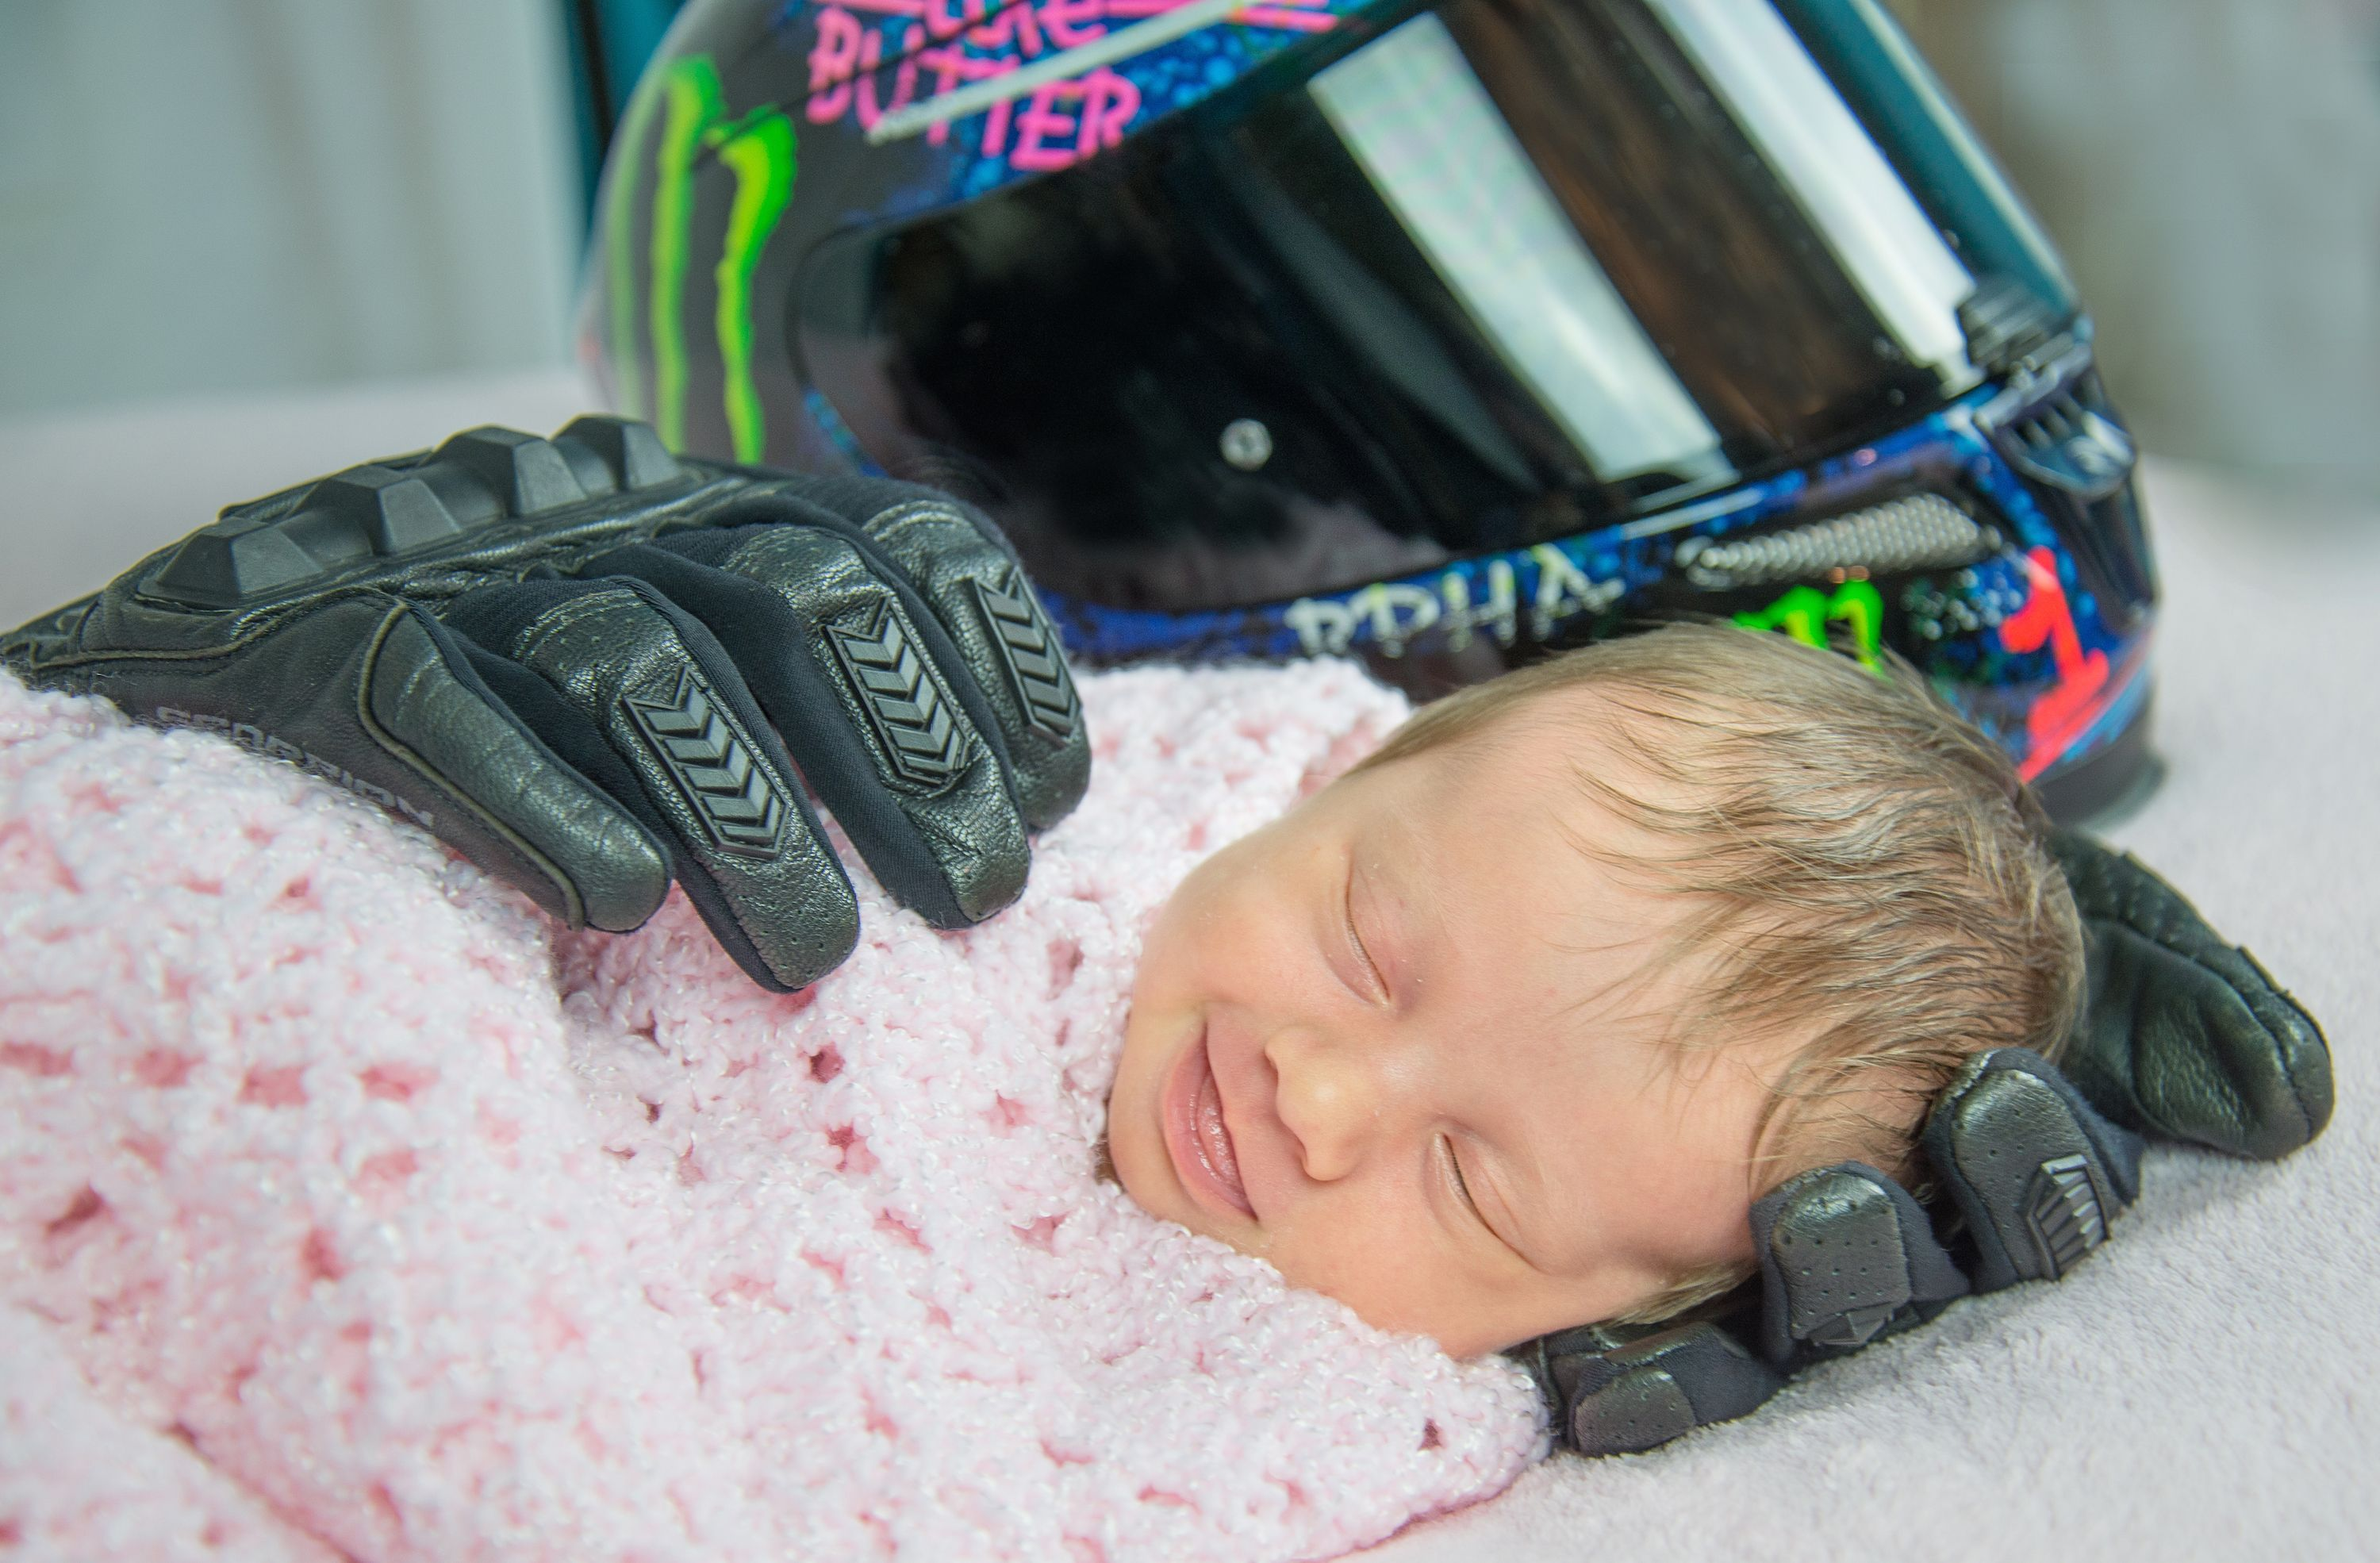 Newborn Poses With Her Late Fathers Motorcycle Gear in Heartbreaking Photo Series